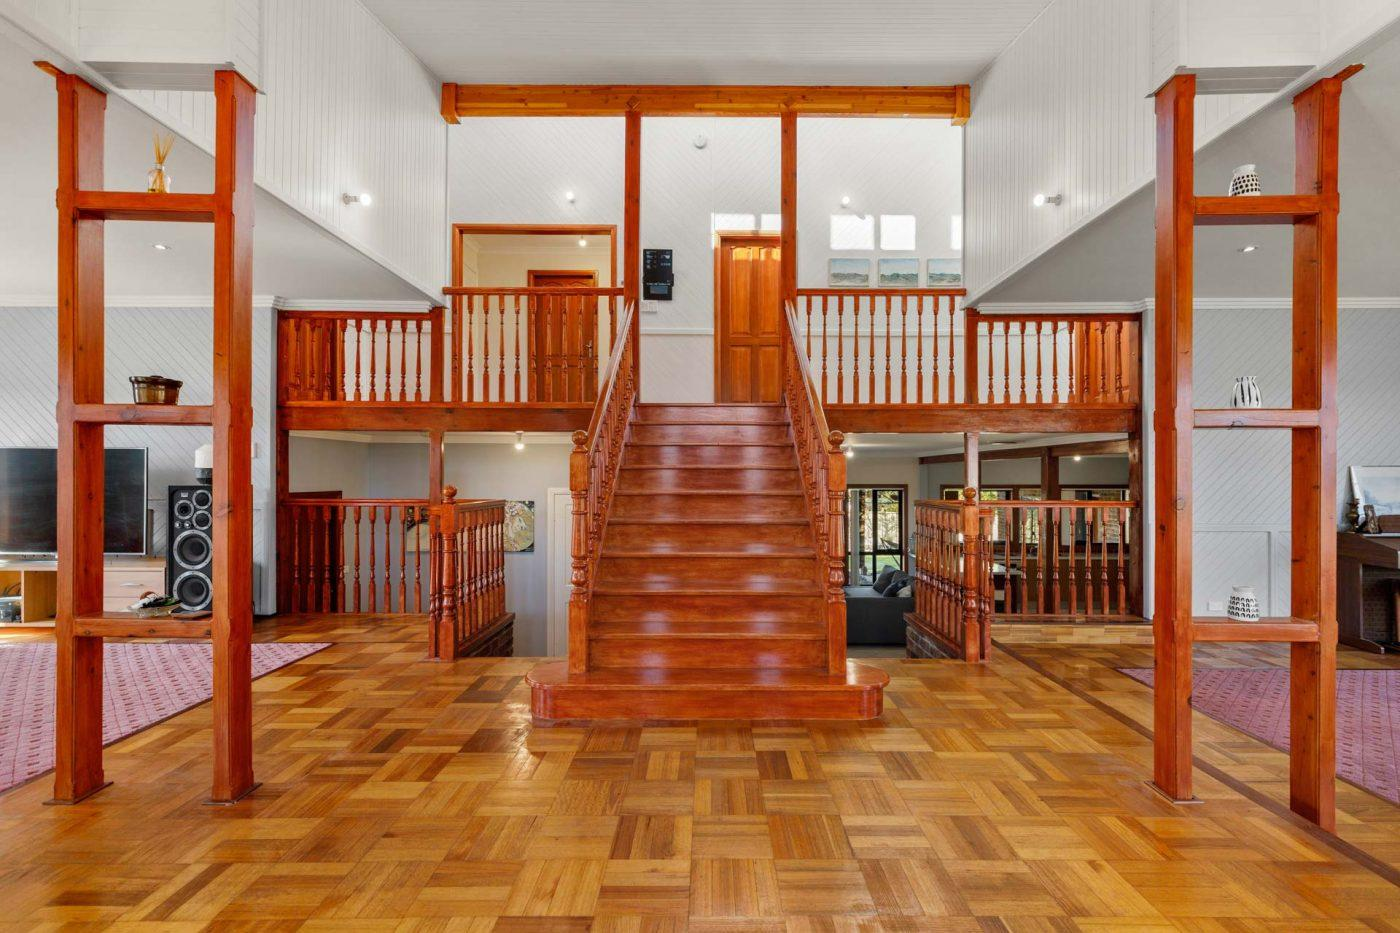 Rustic Welcoming Area with Wooden Floors & Stairwell